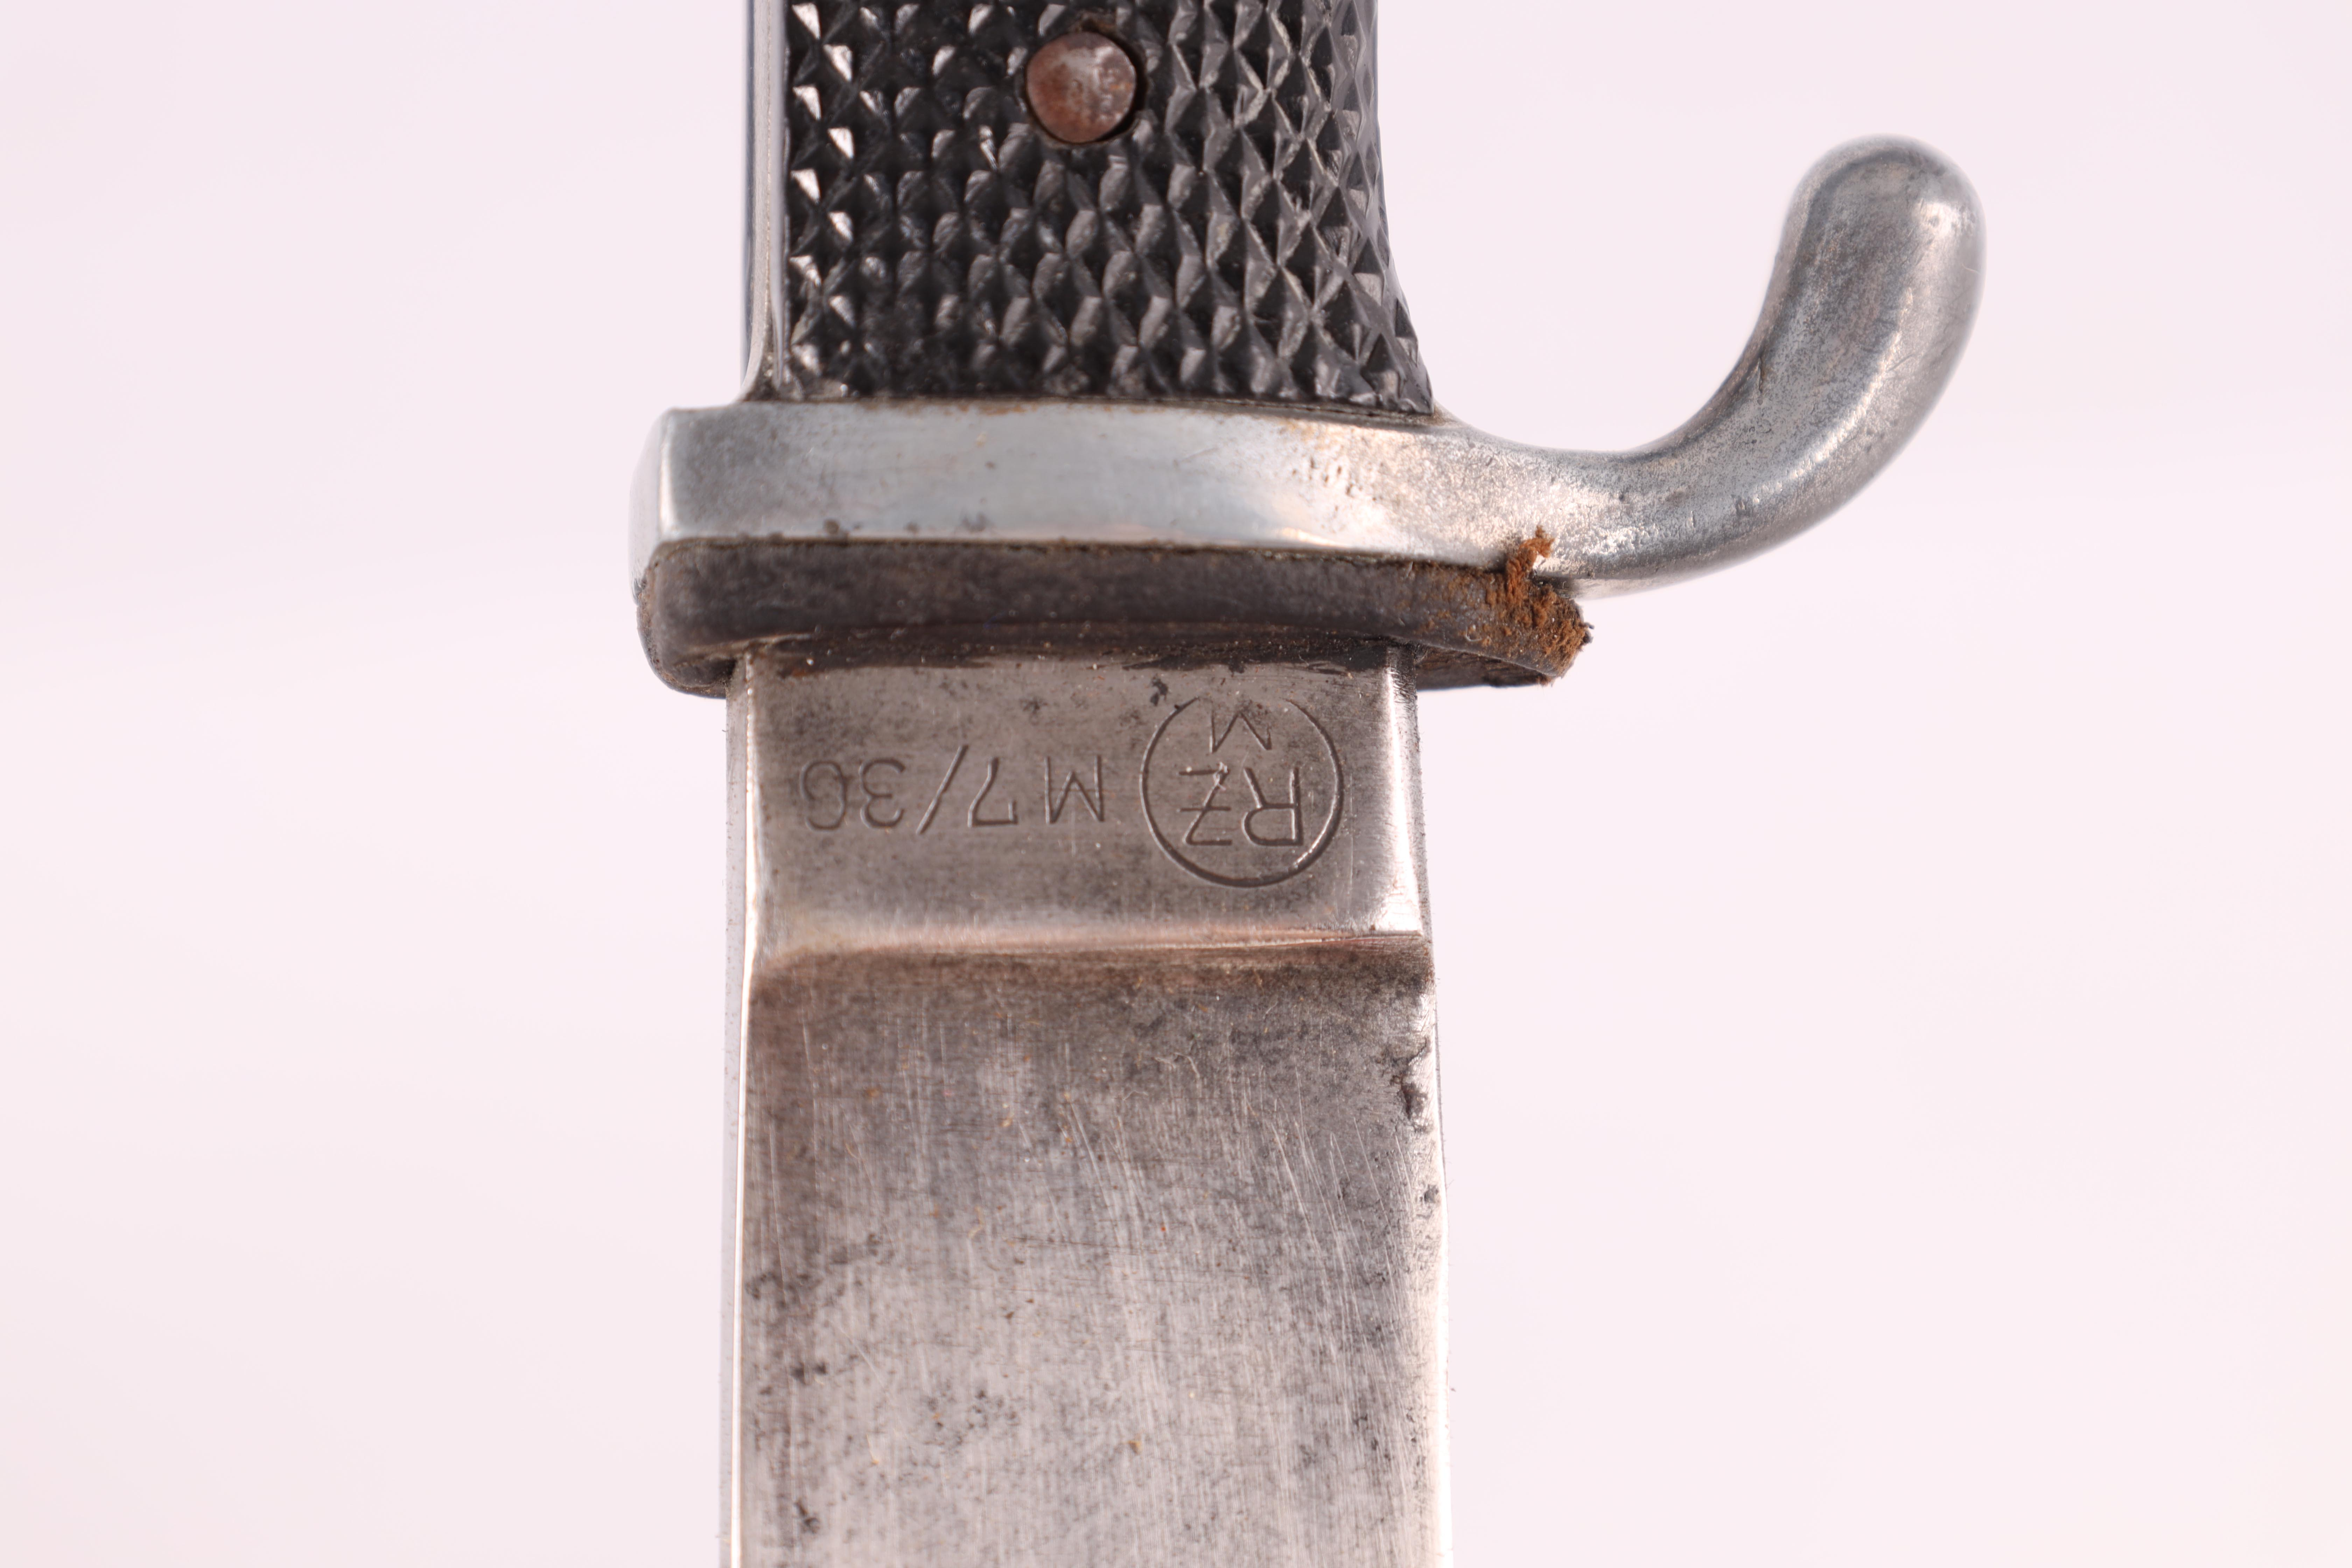 A WORLD WAR II GERMAN NAZI HITLER YOUTH DAGGER with checkered grip set with an enamel swastika - Image 6 of 7